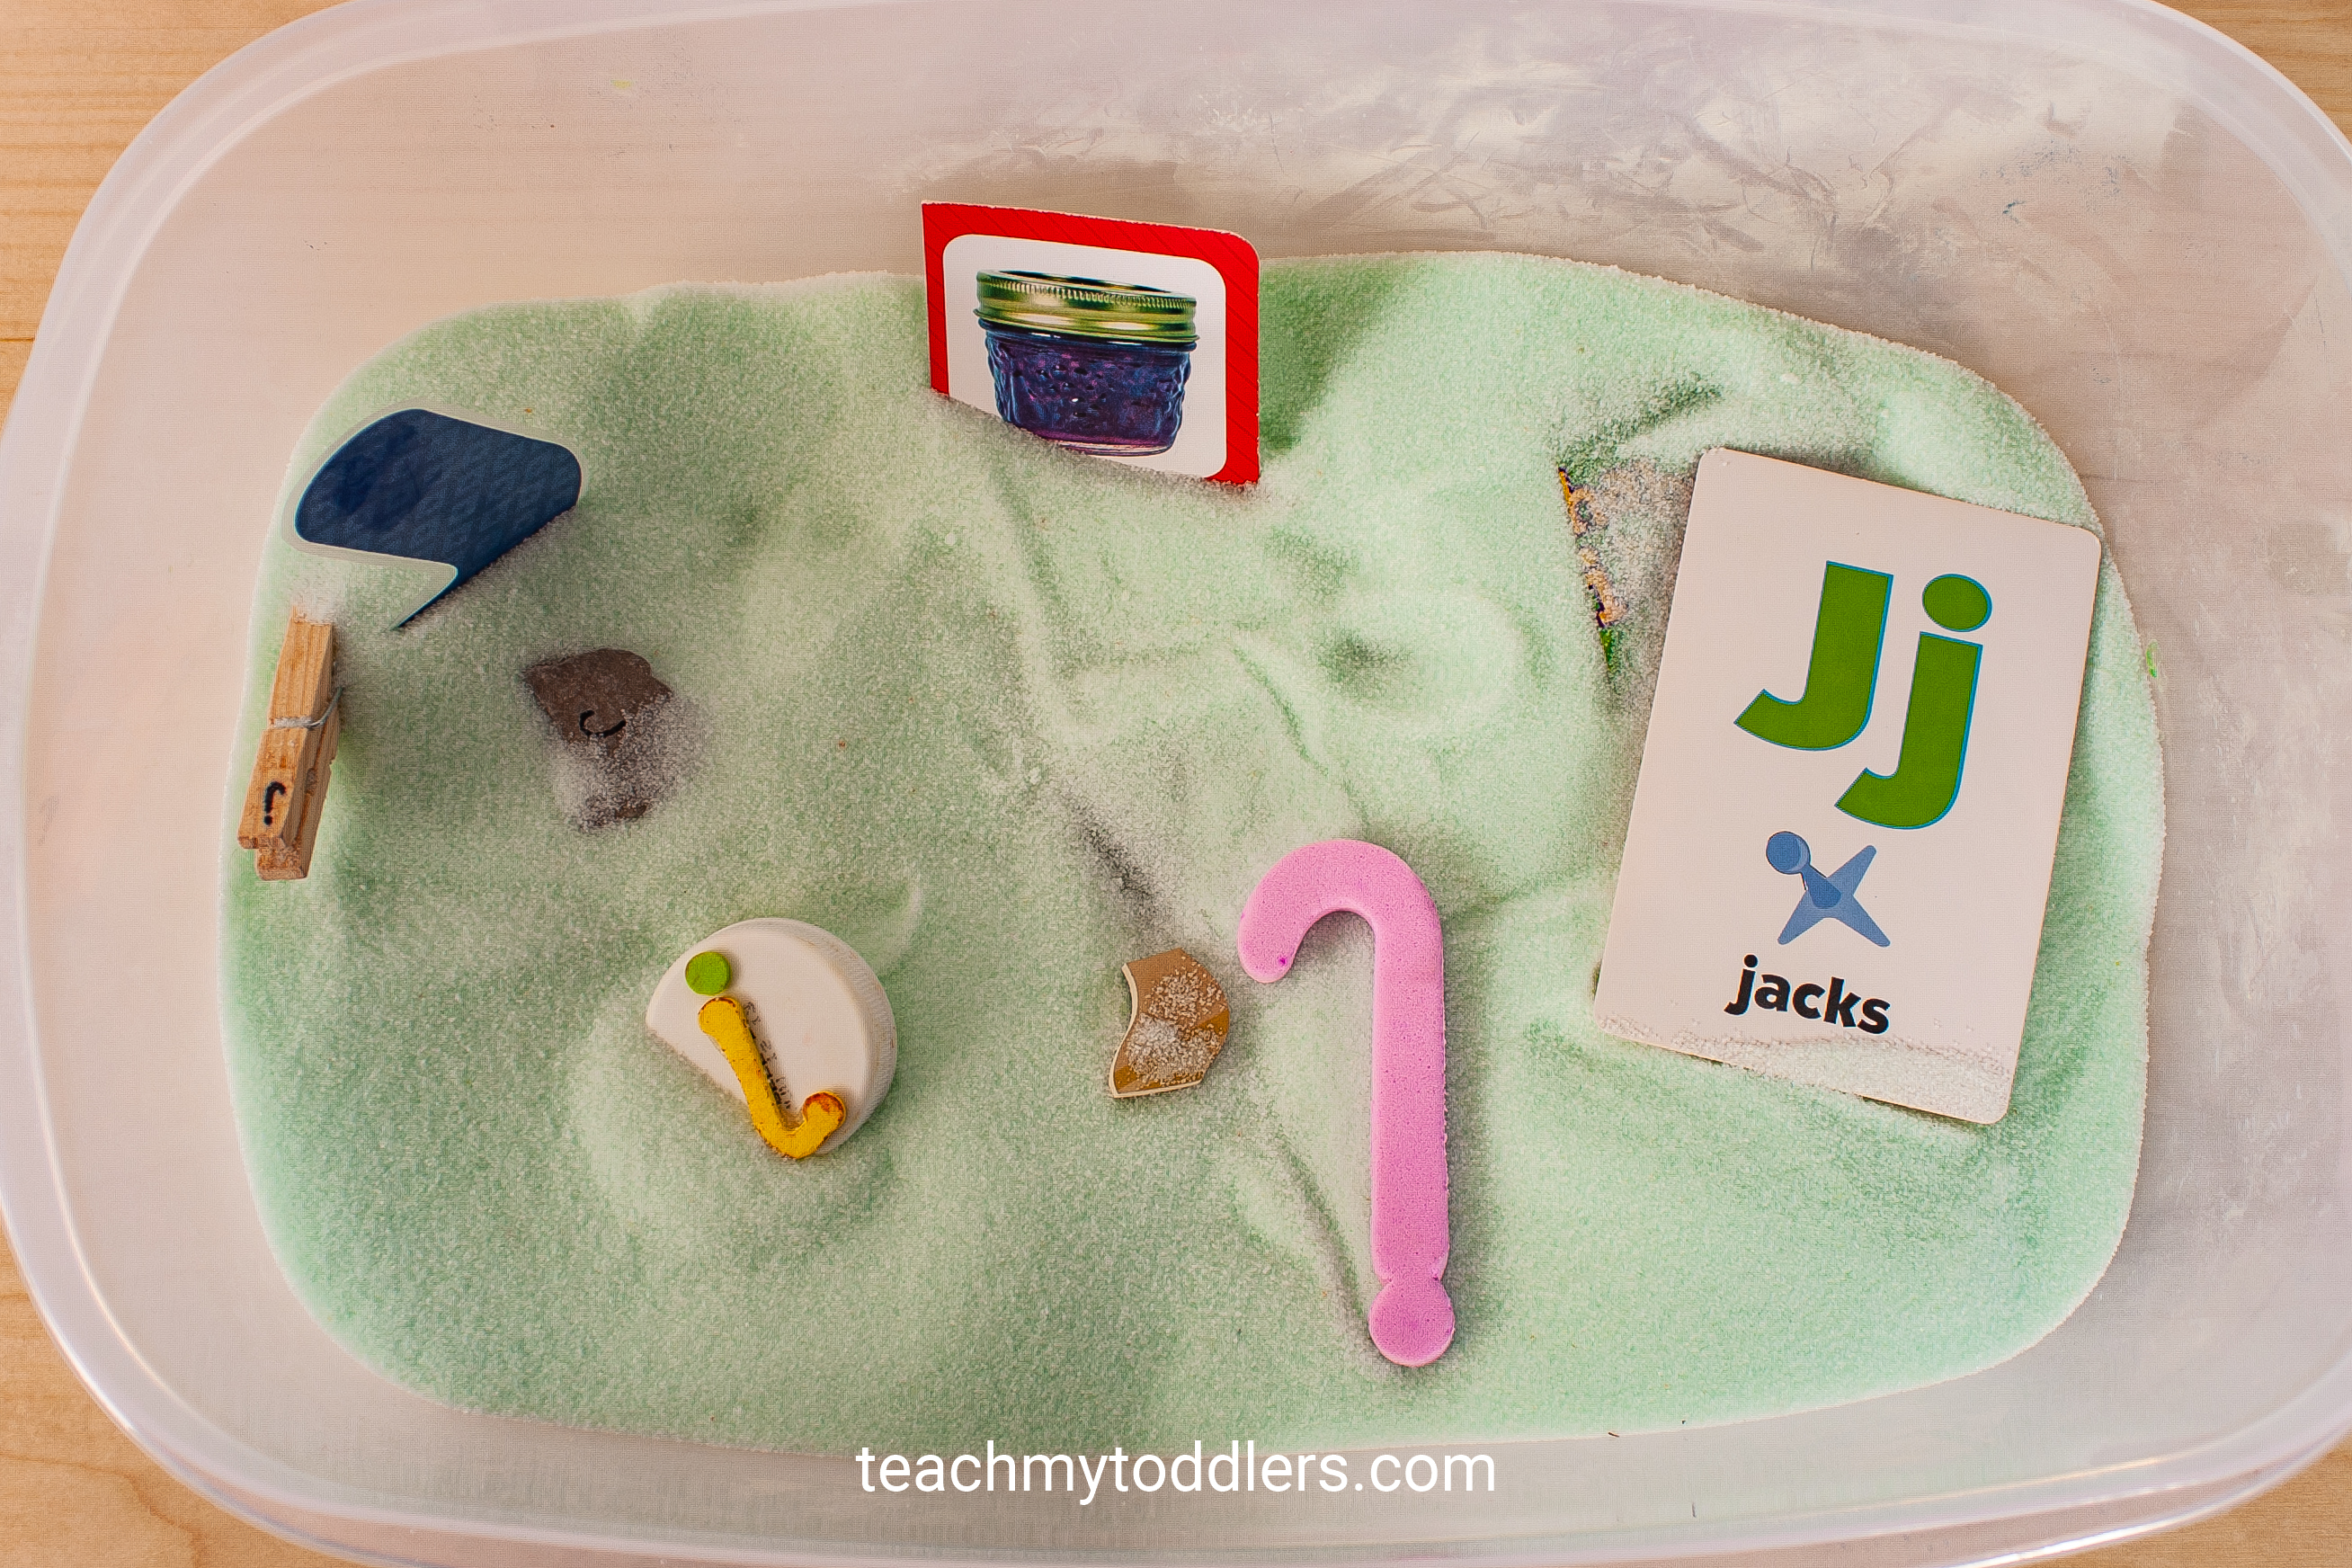 Use these awesome jungle activities to teach your toddlers the letter j